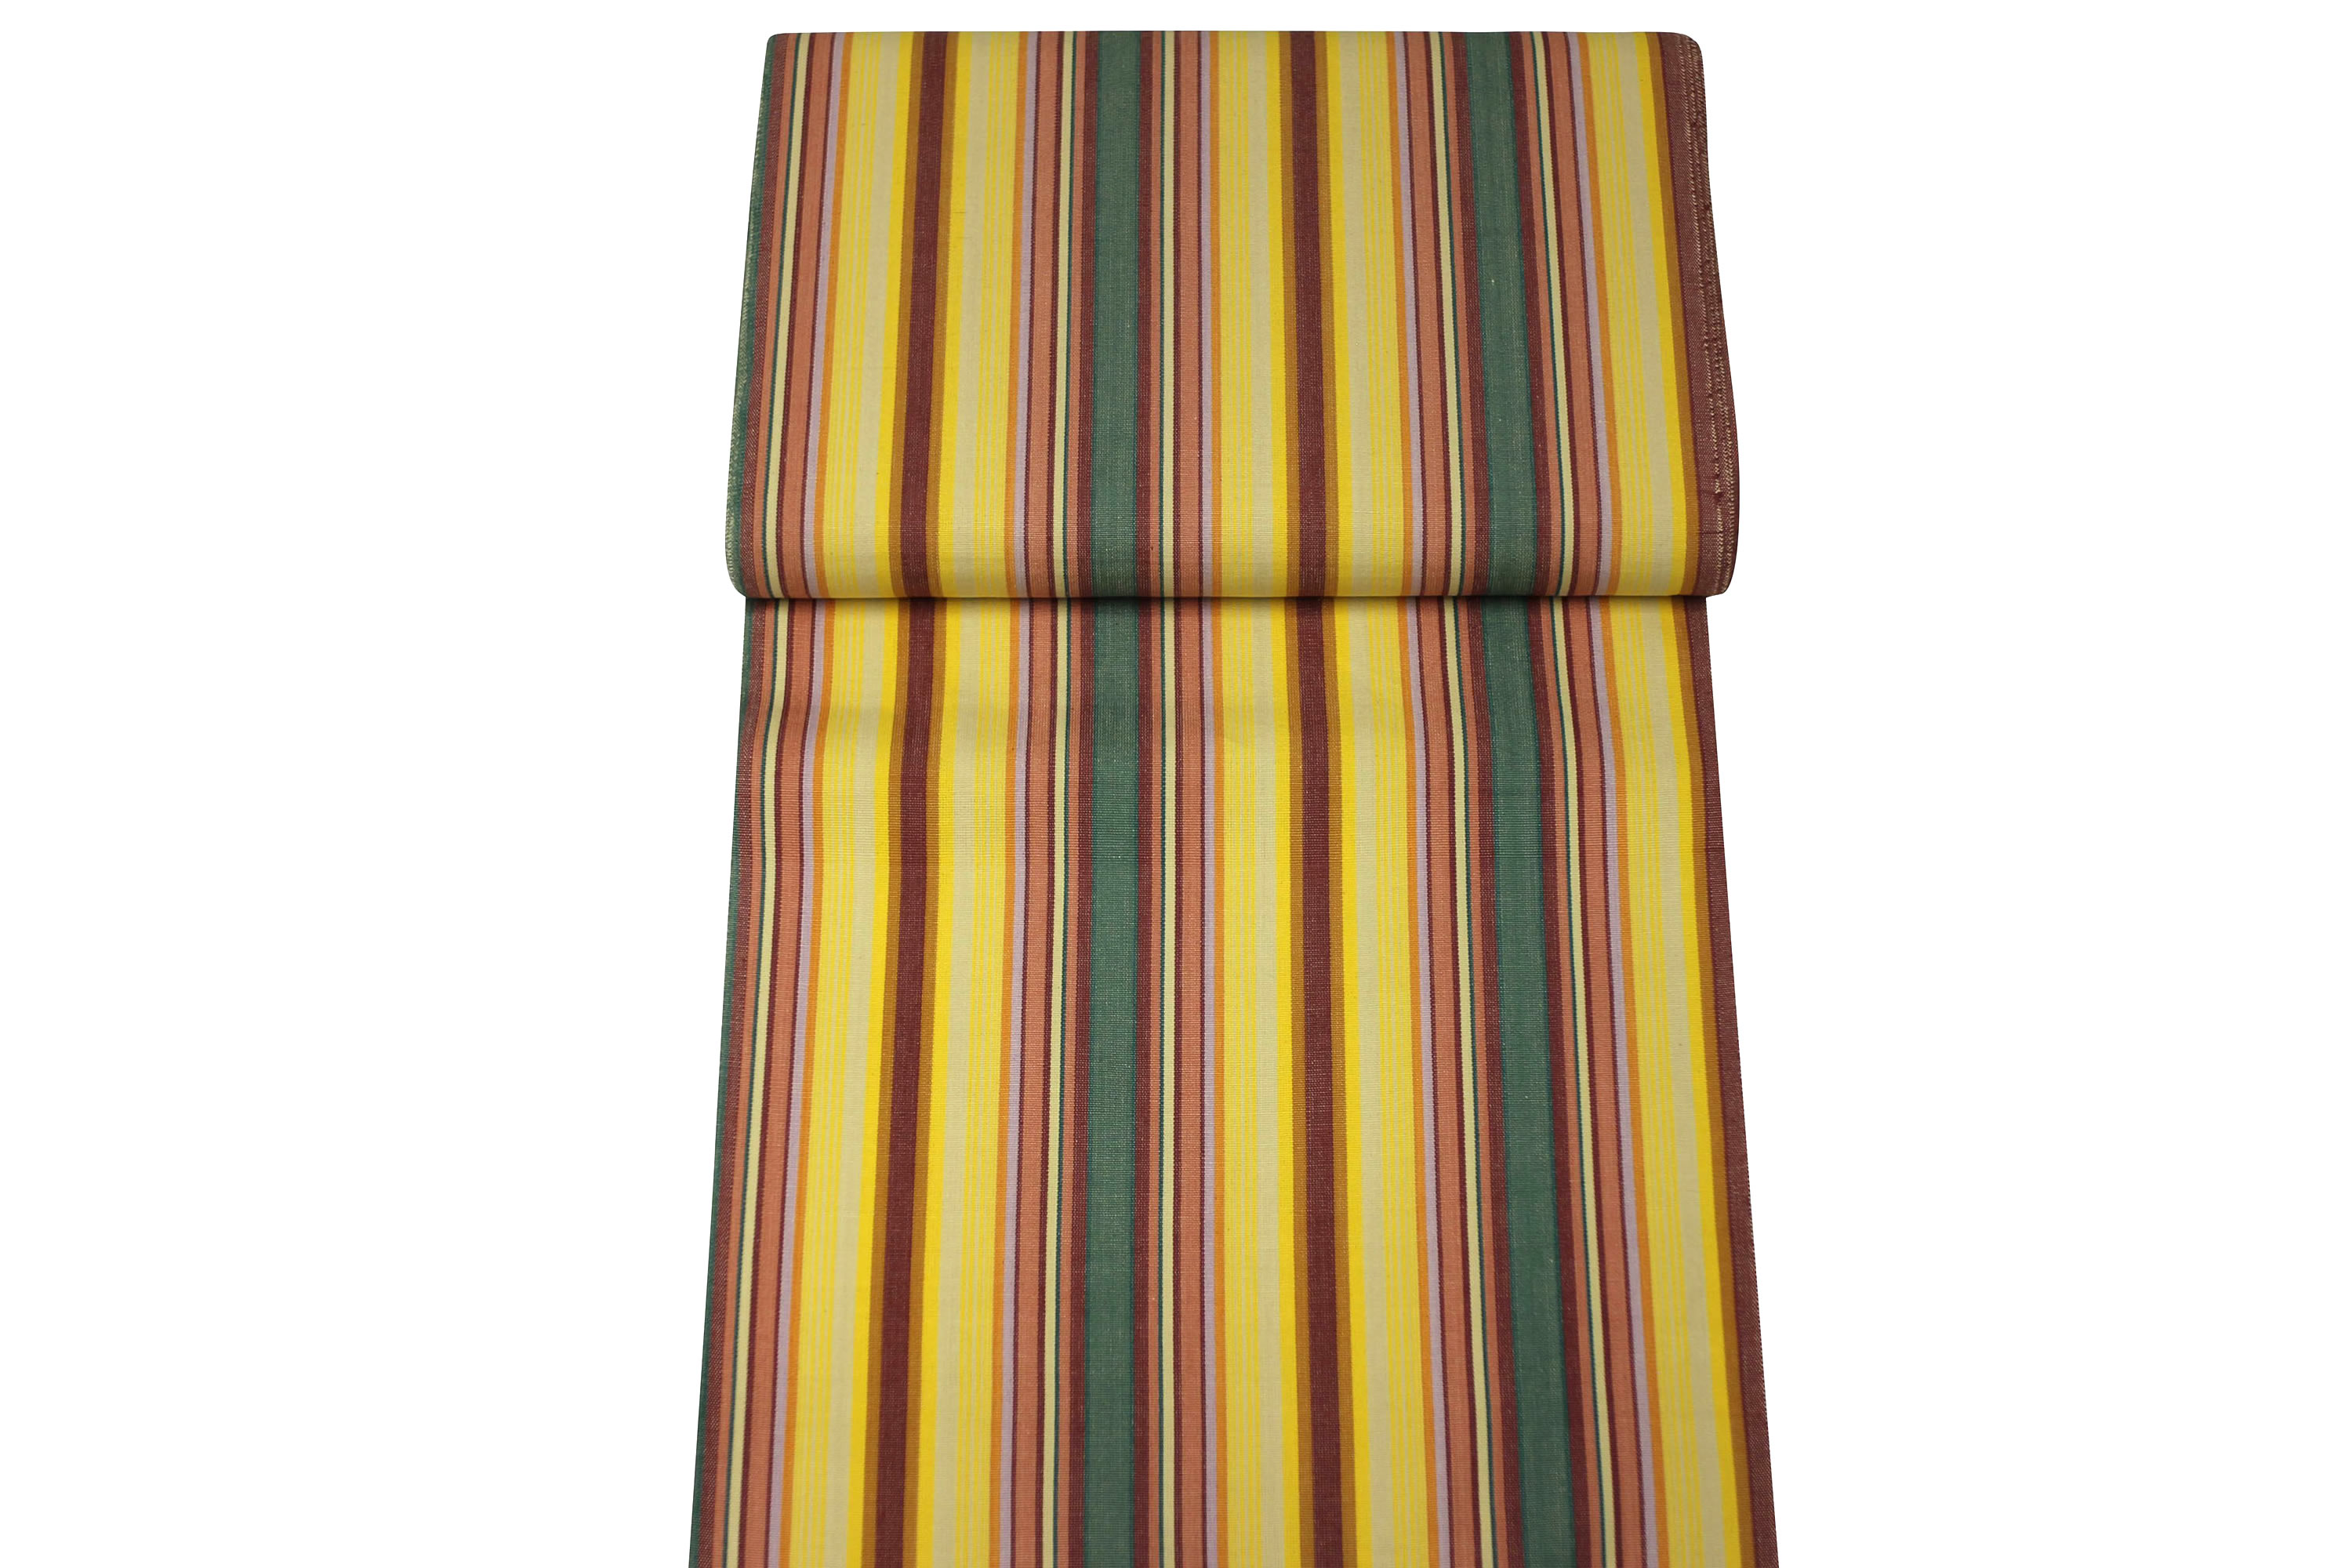 Lemon Replacement Deck Chair Sling - Waltzing